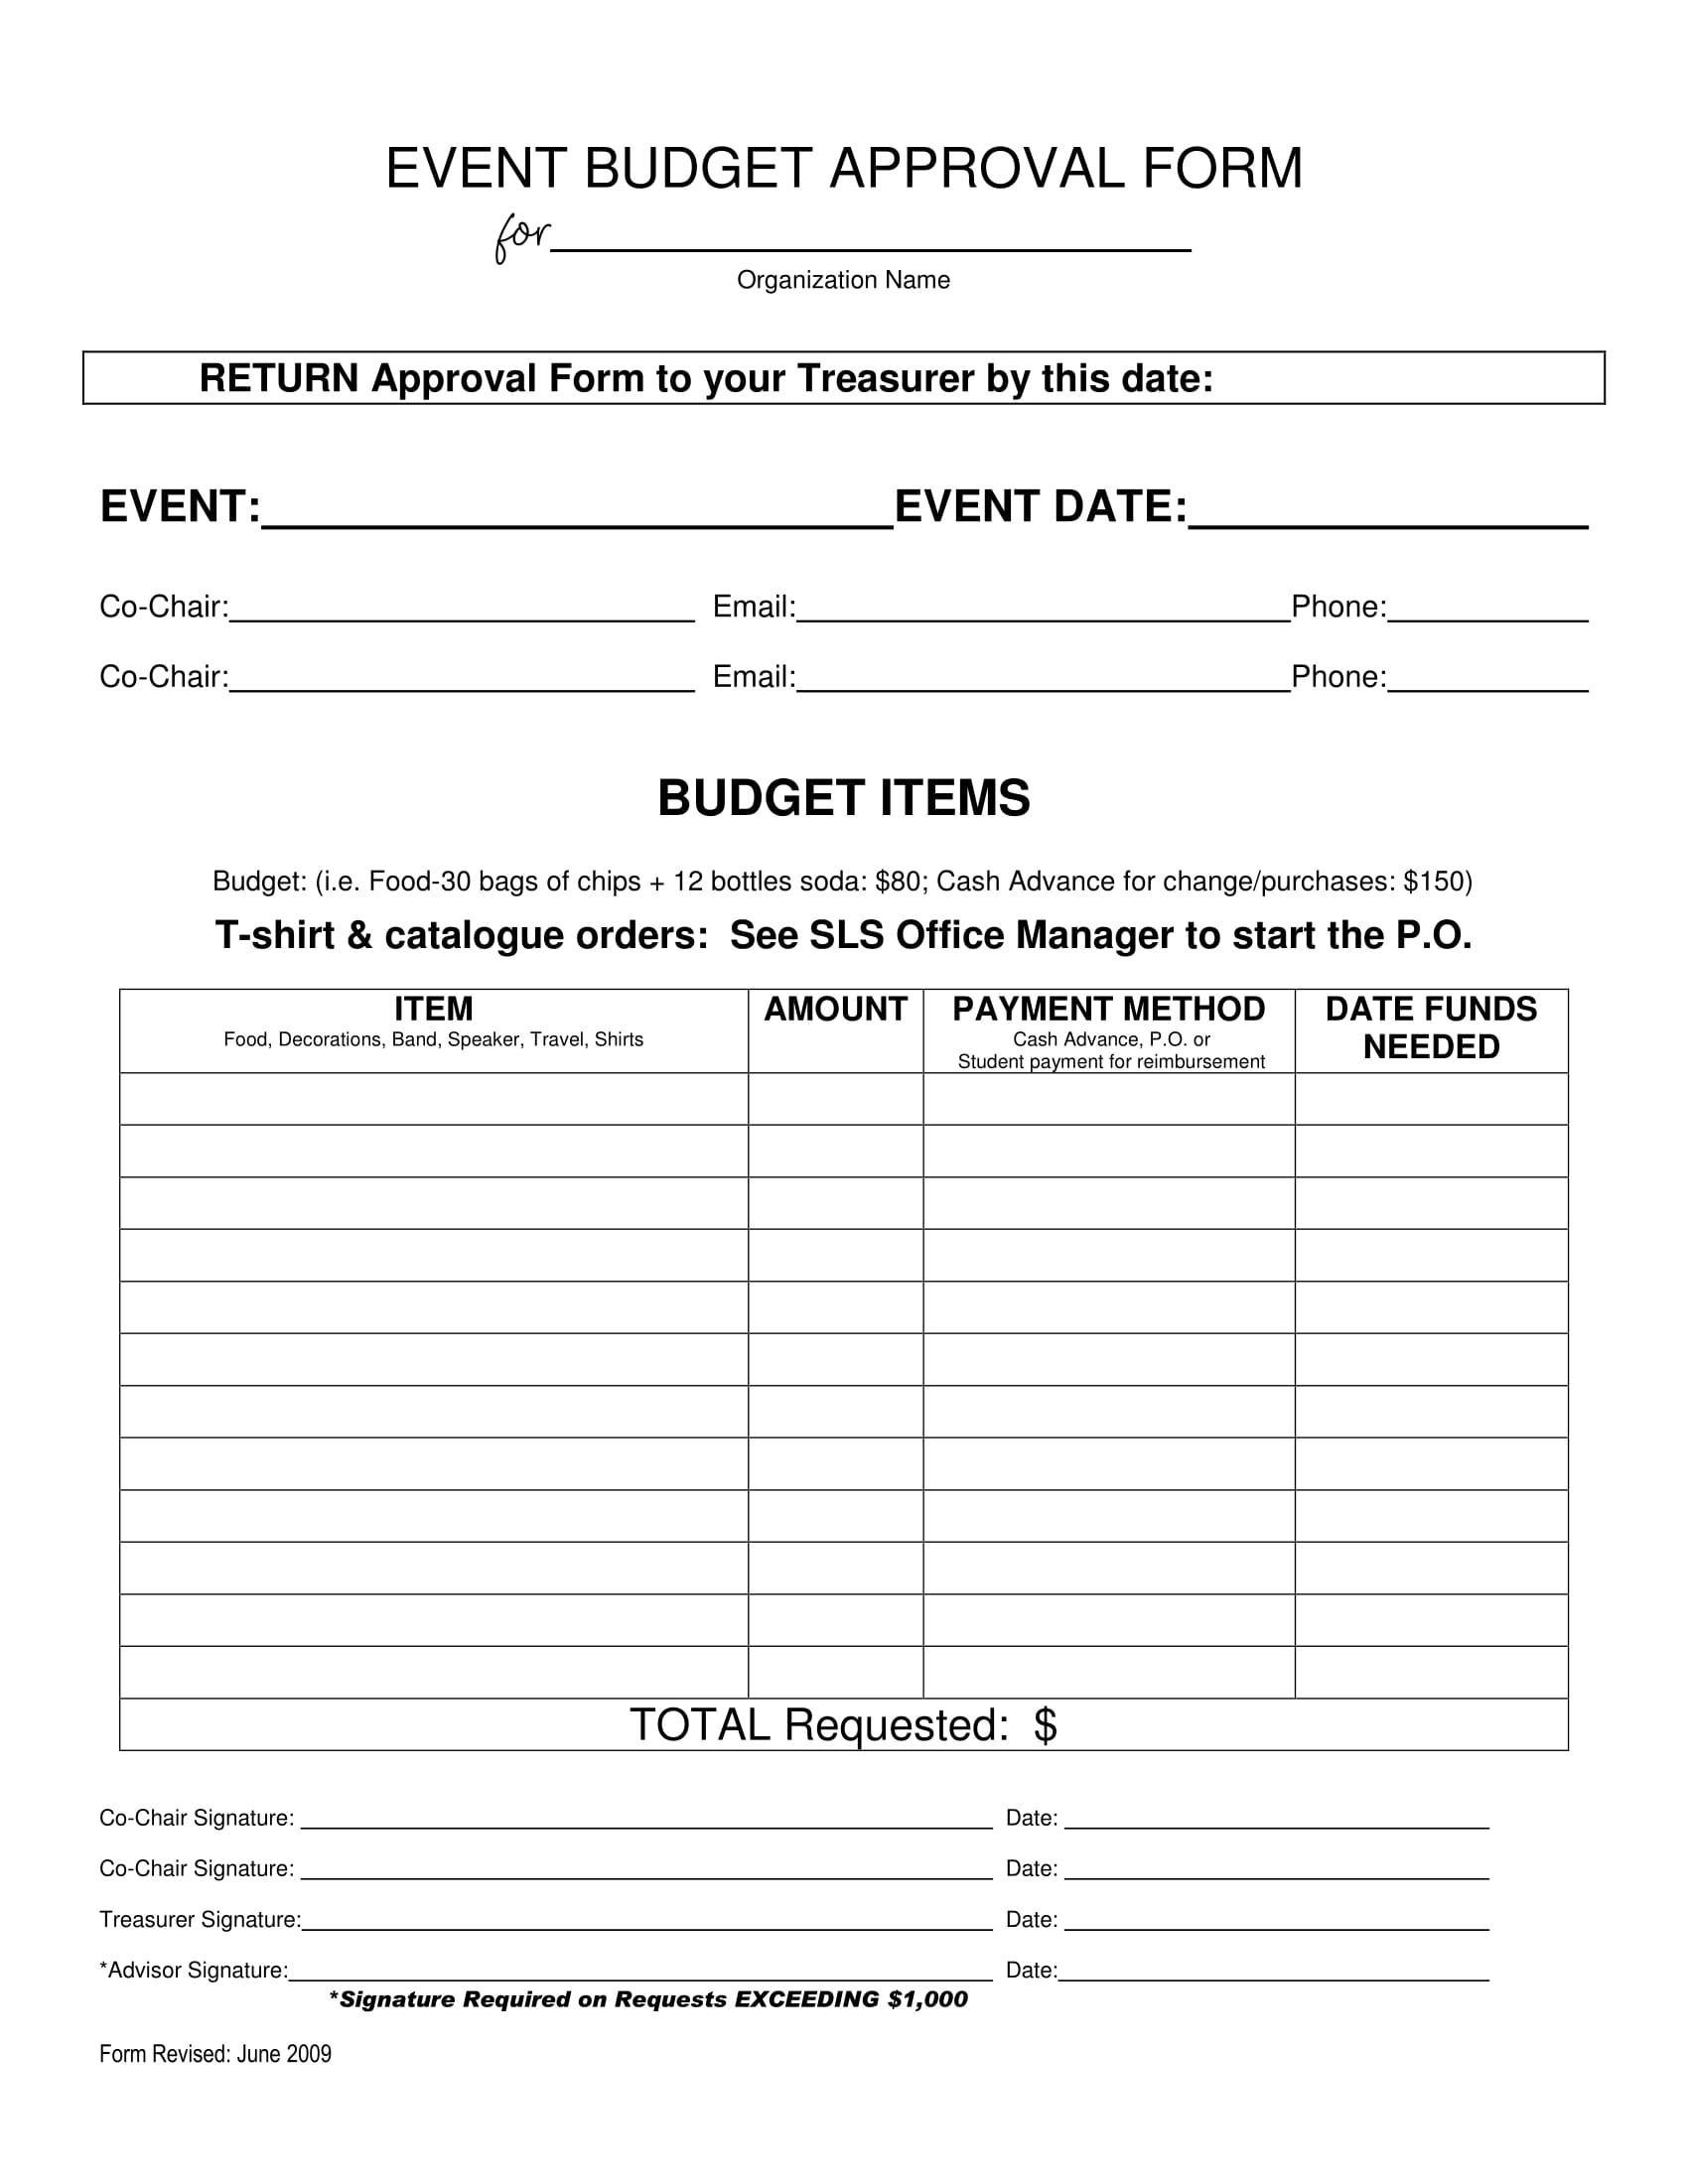 Event Budget Approval Form Sample